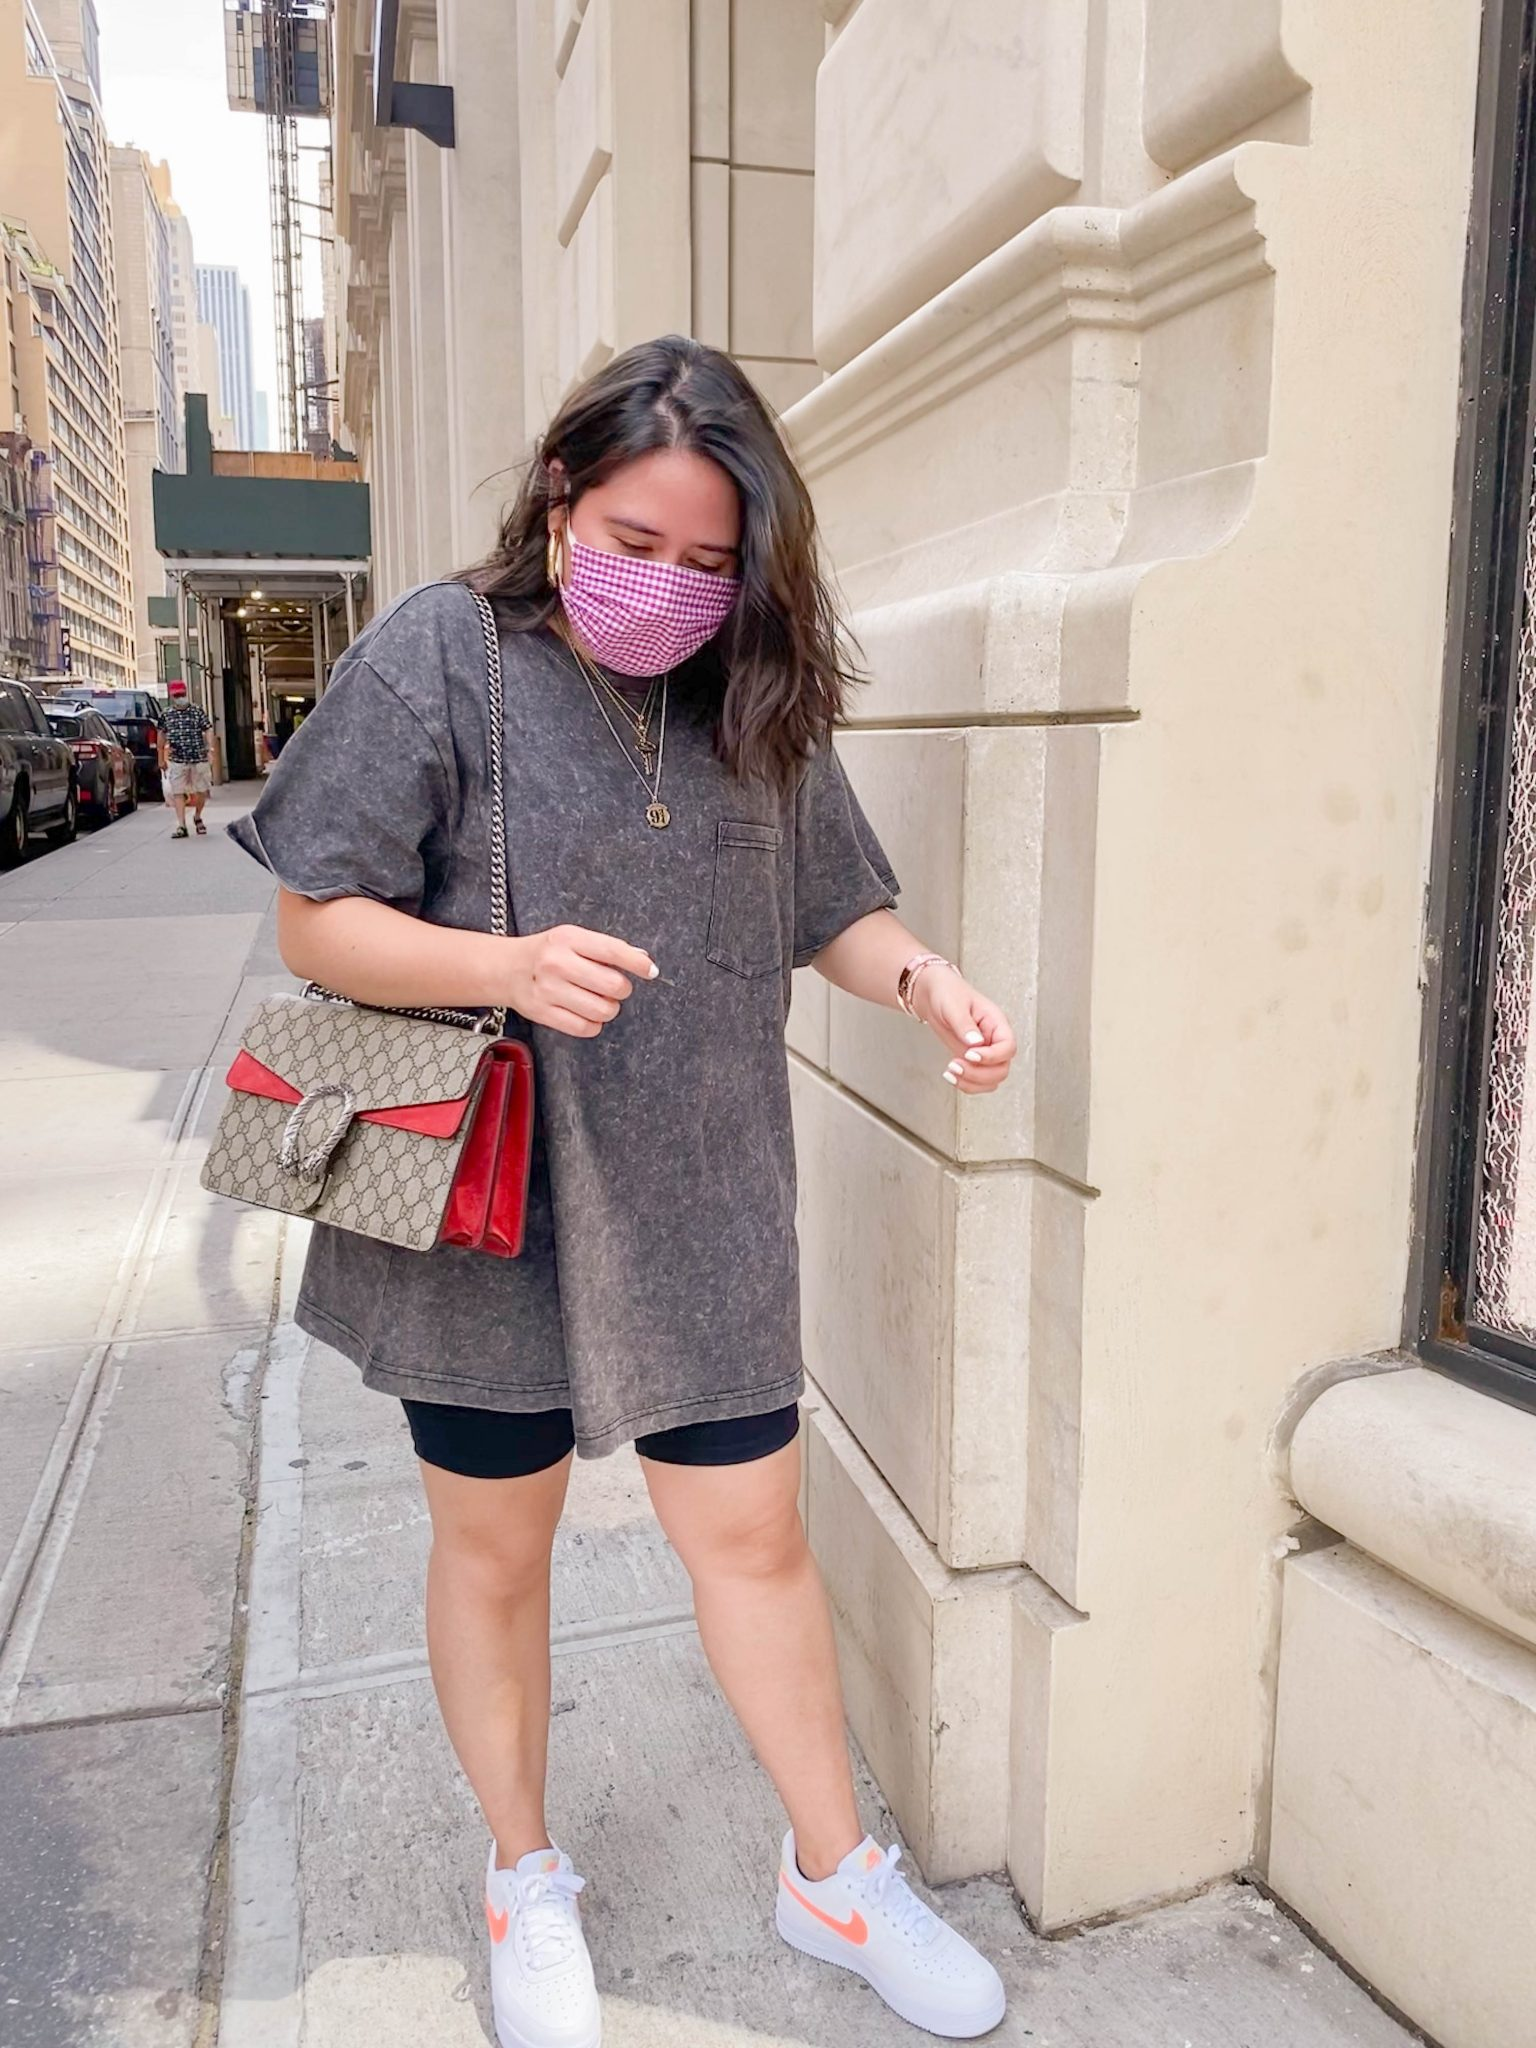 Recent Fashion and Beauty Finds by popular NYC life and style blog, Live Laugh Linda: image of woman outside of Nordstrom Flagship in New York City with Nike Air force 1 women sneakers and Gucci purse